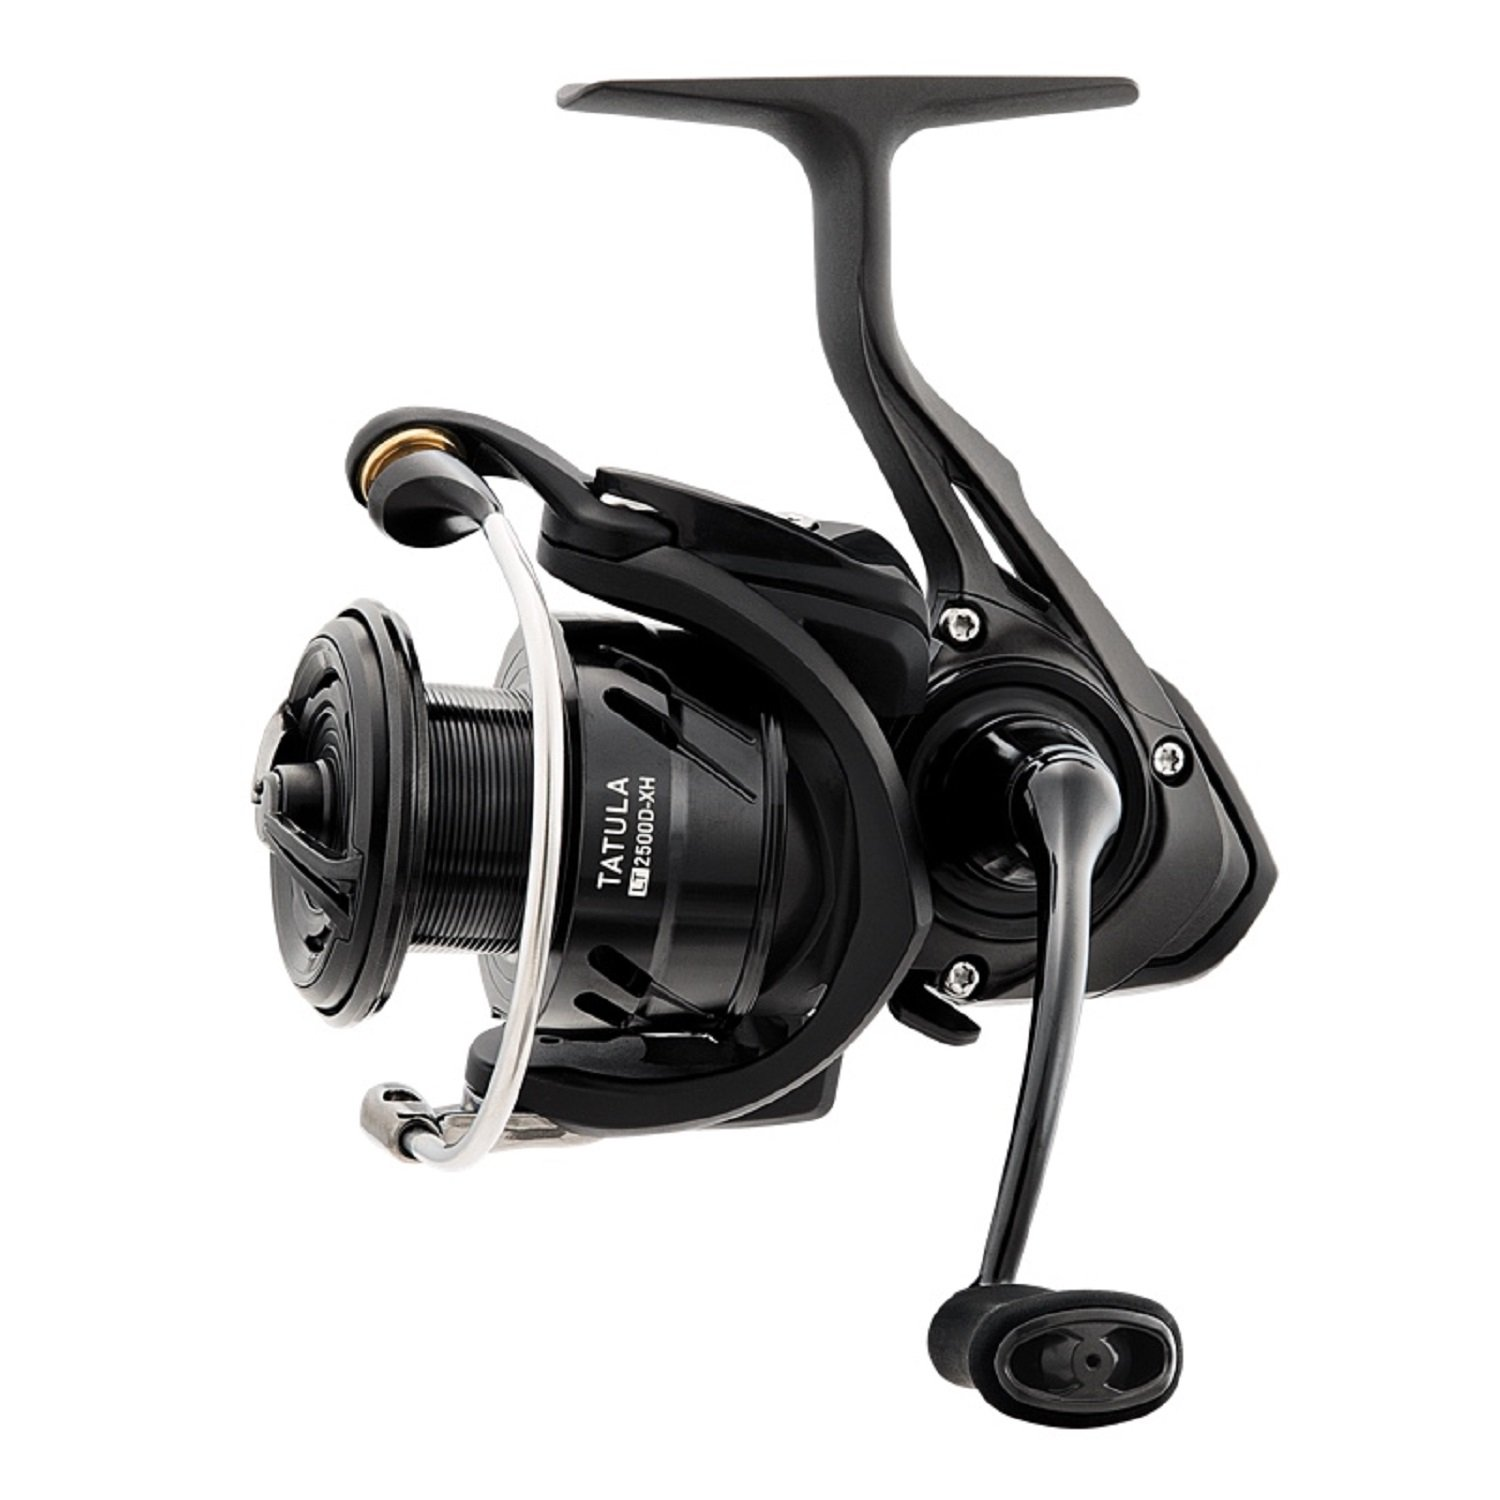 Daiwa Tatula LT Spin Reel with 6(1Crbb+5Bb)+1 6.2: 1 TALT3000DCXH, Black by Daiwa